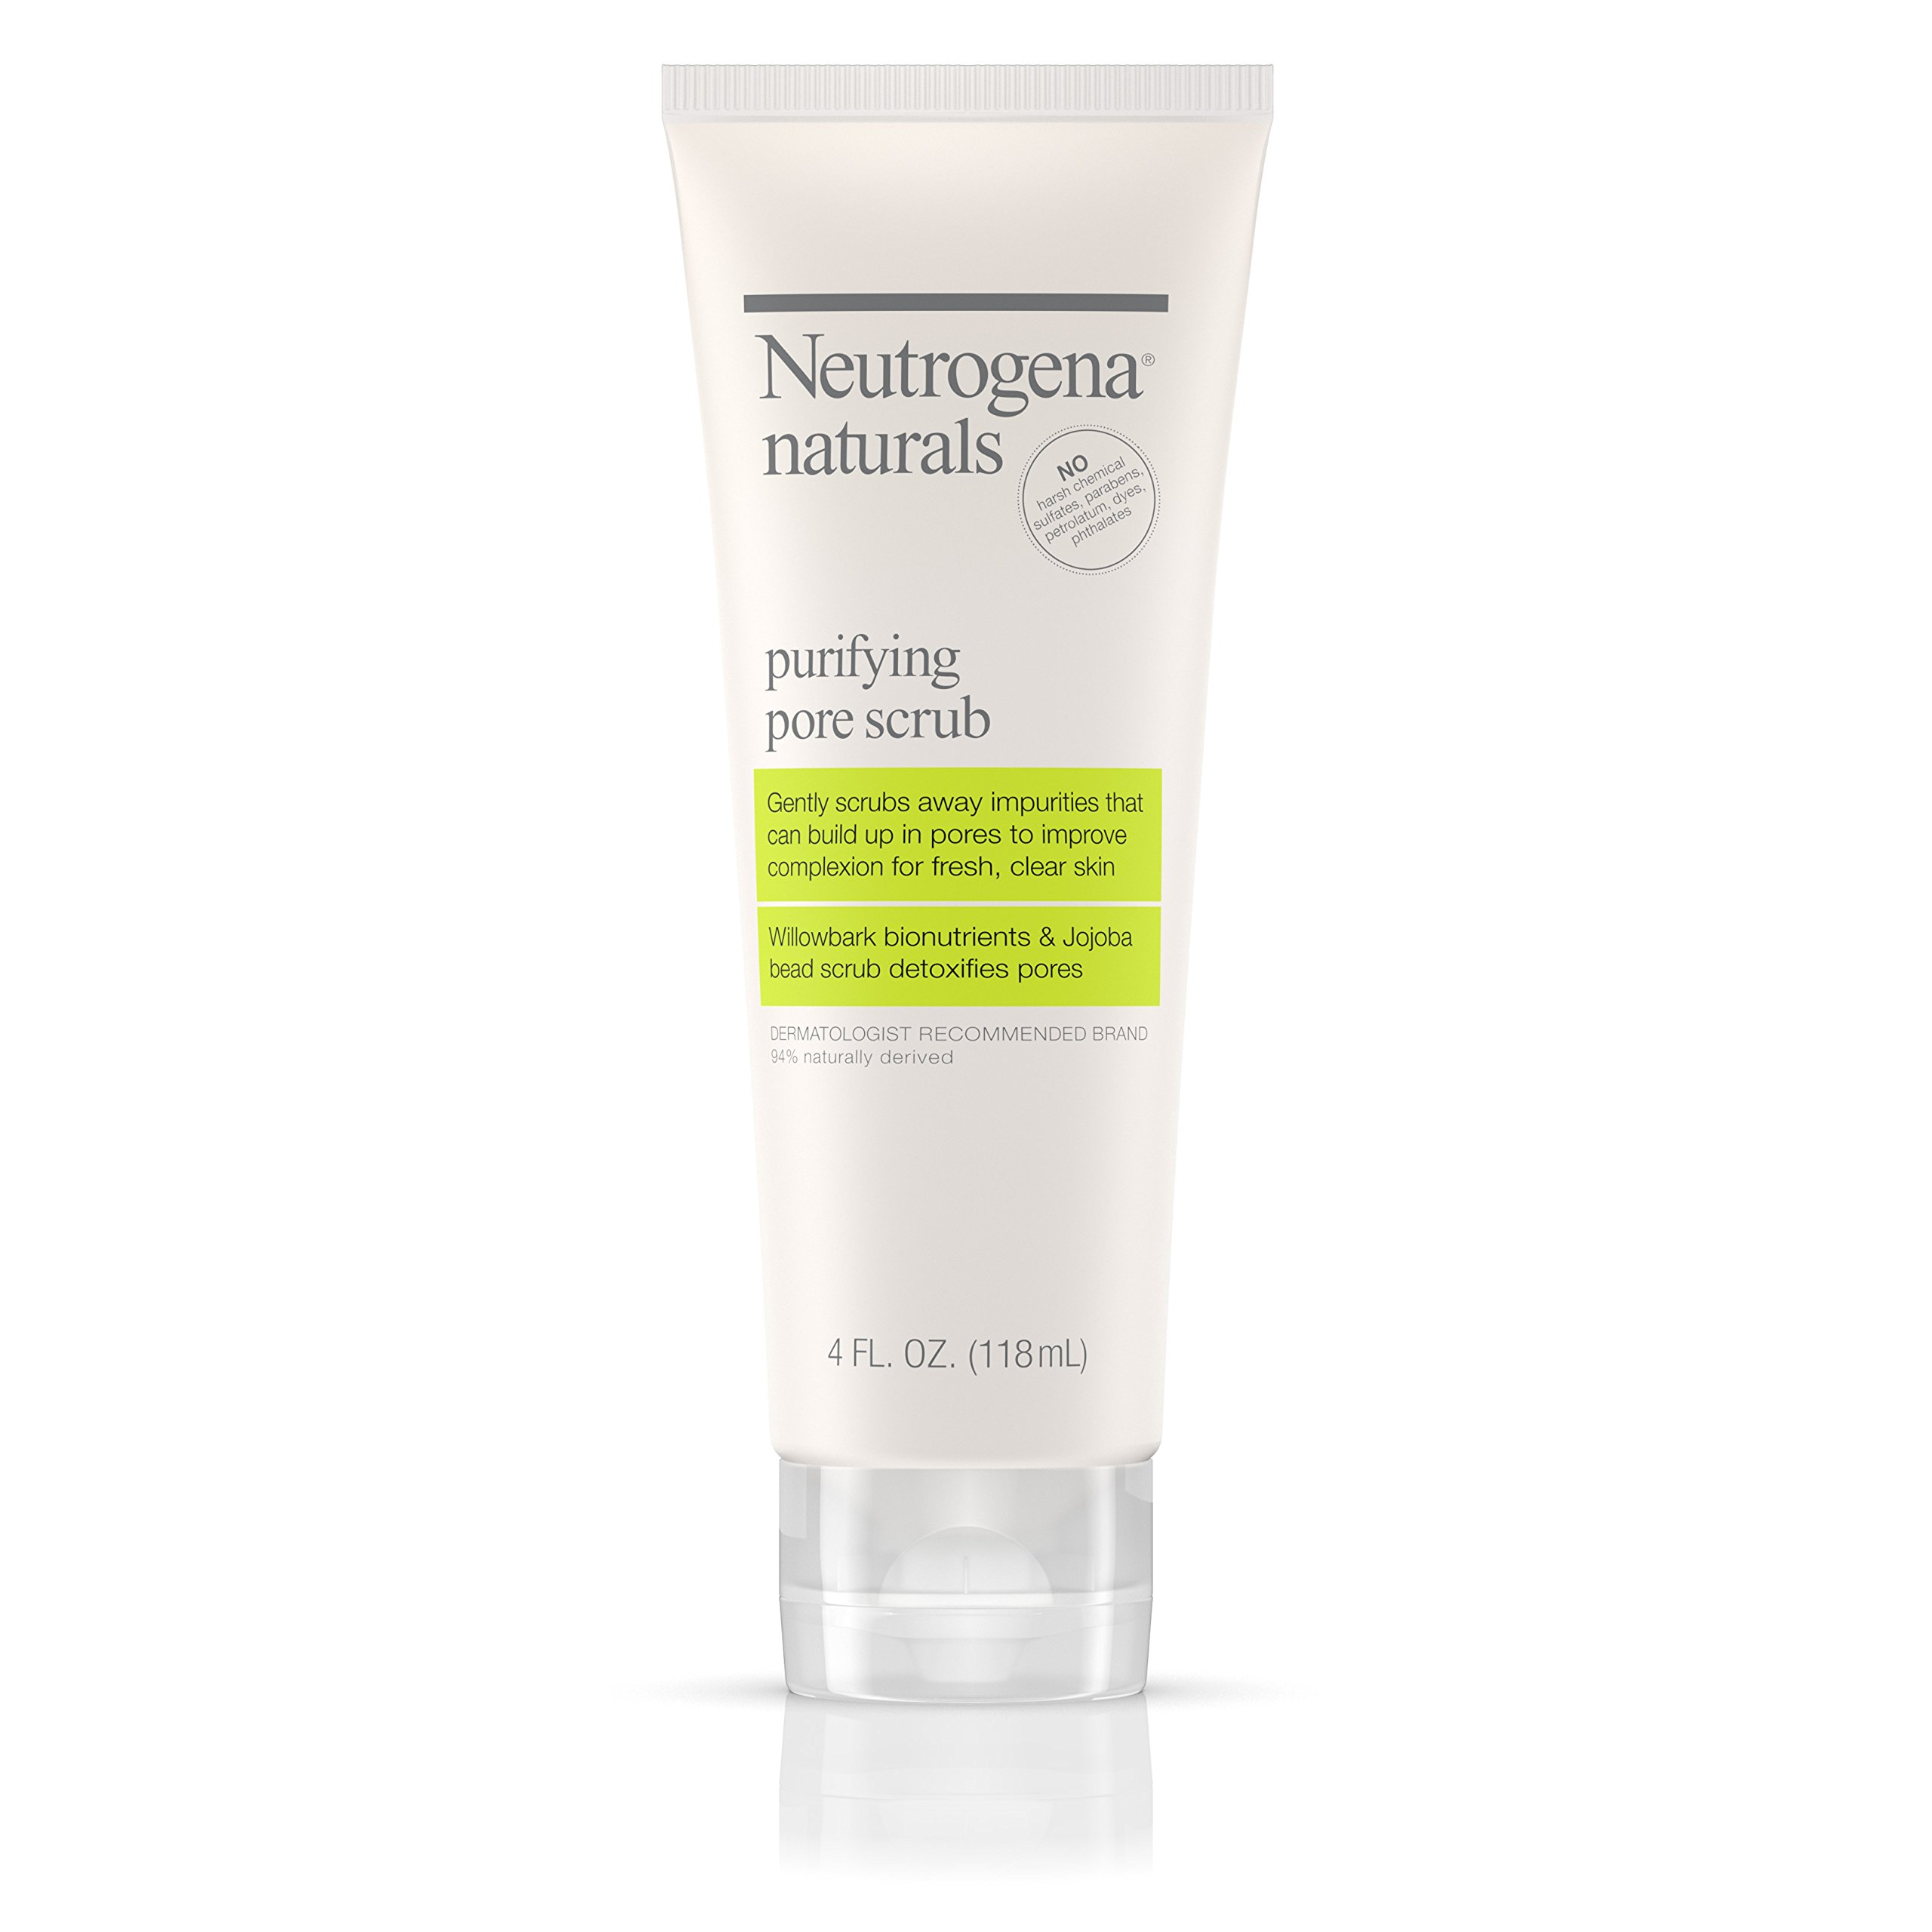 Neutrogena Naturals Purifying Daily Pore Facial Scrub with Natural Salicylic Acid from Willowbark Bionutrients,Hypoallergenic,Non-Comedogenic & Sulfate-,Paraben- & Phthalate-Free,4 fl.Oz(3 pack) by Neutrogena